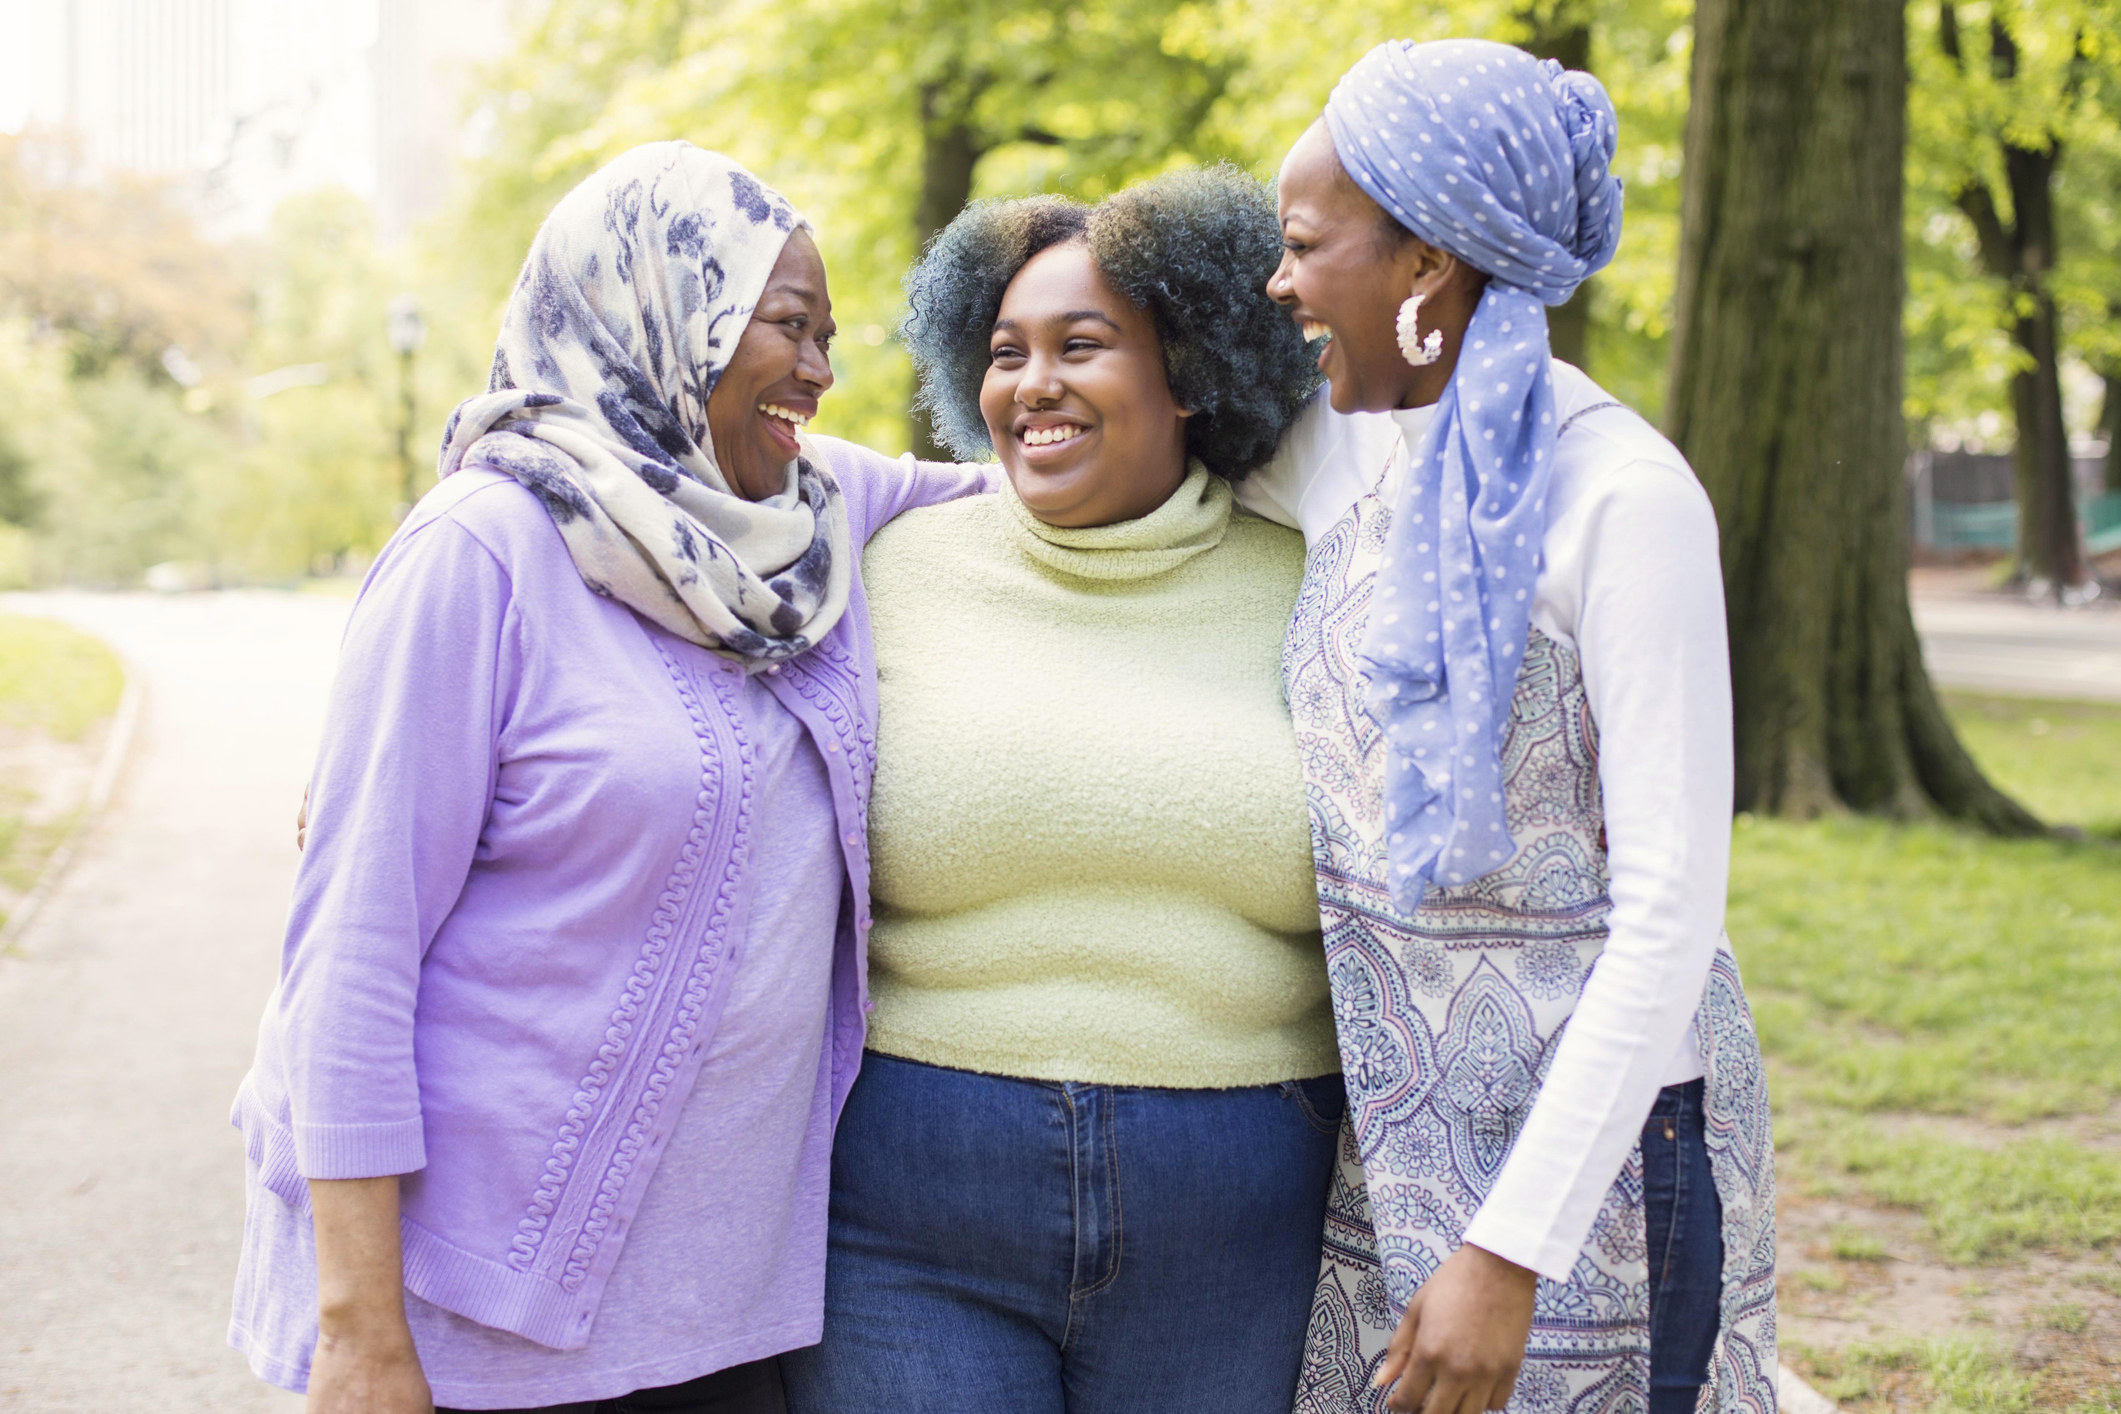 Three Muslim woman laughing together at a park